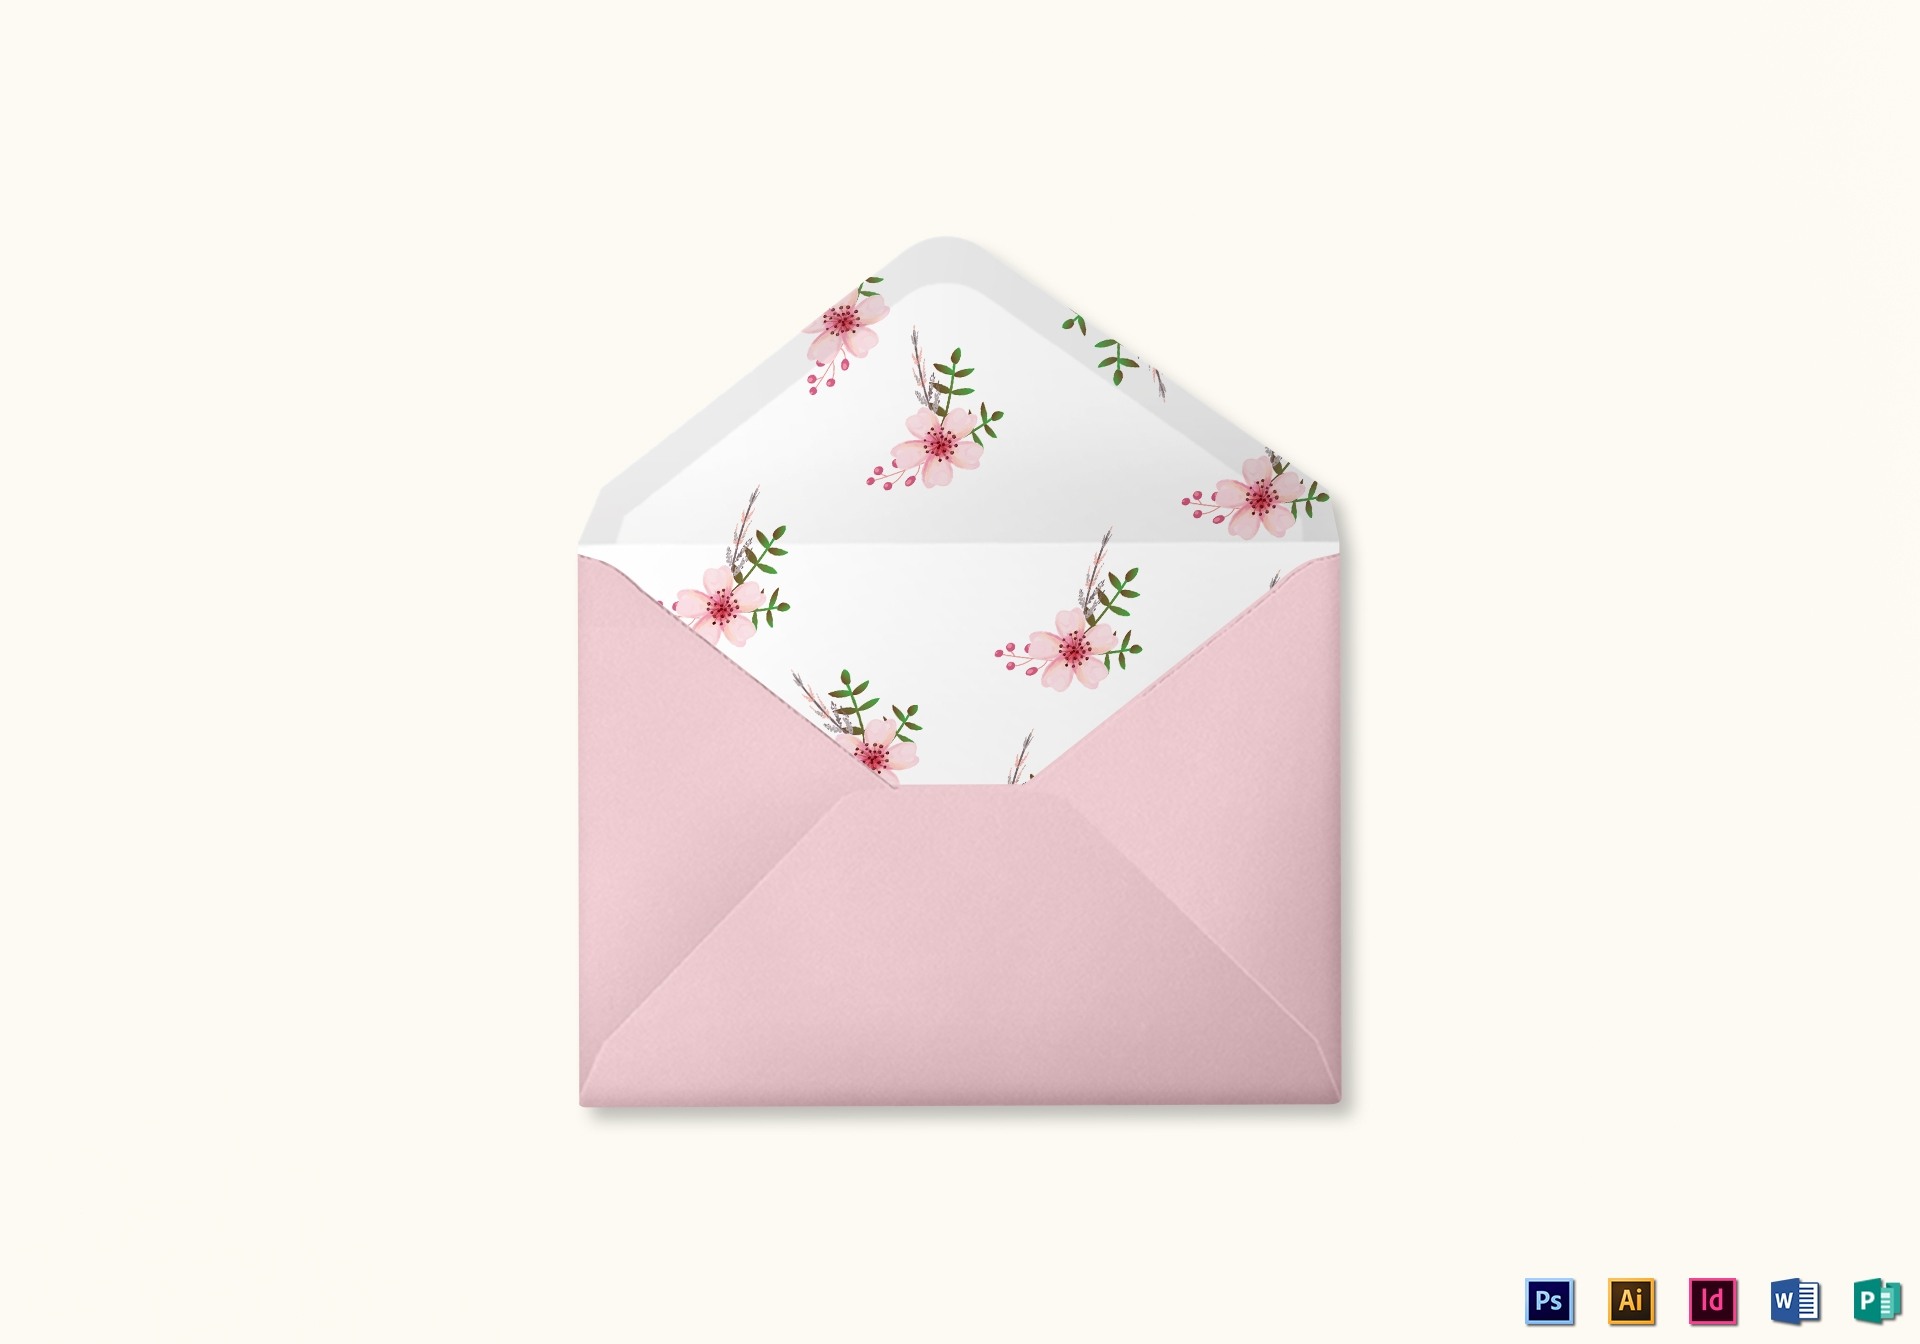 pink floral wedding envelope card template